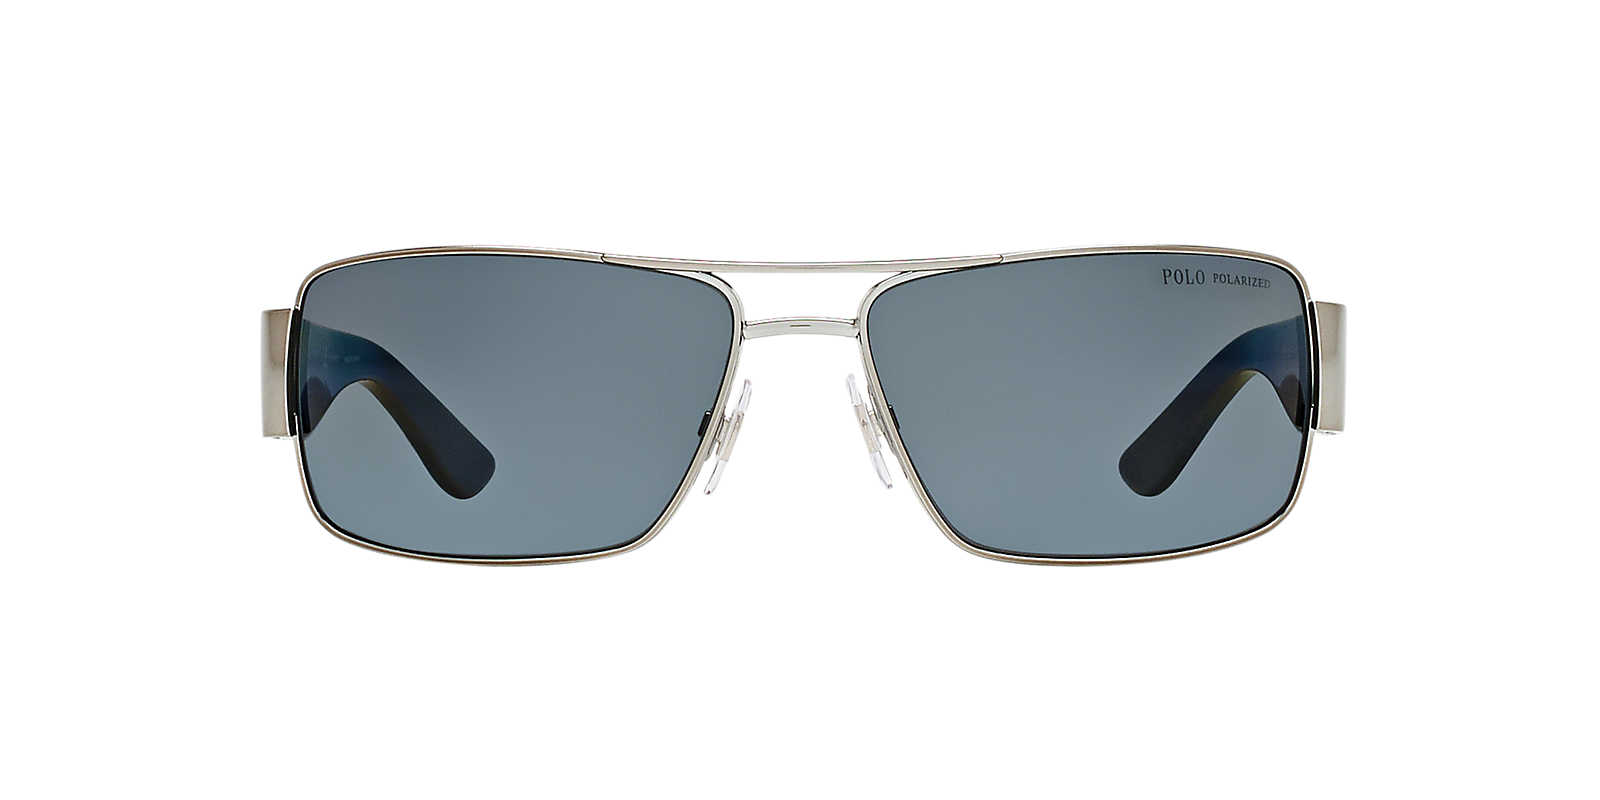 248f2f4a75 ray bands bob clean ray ban aviator sunglasses price in qatar